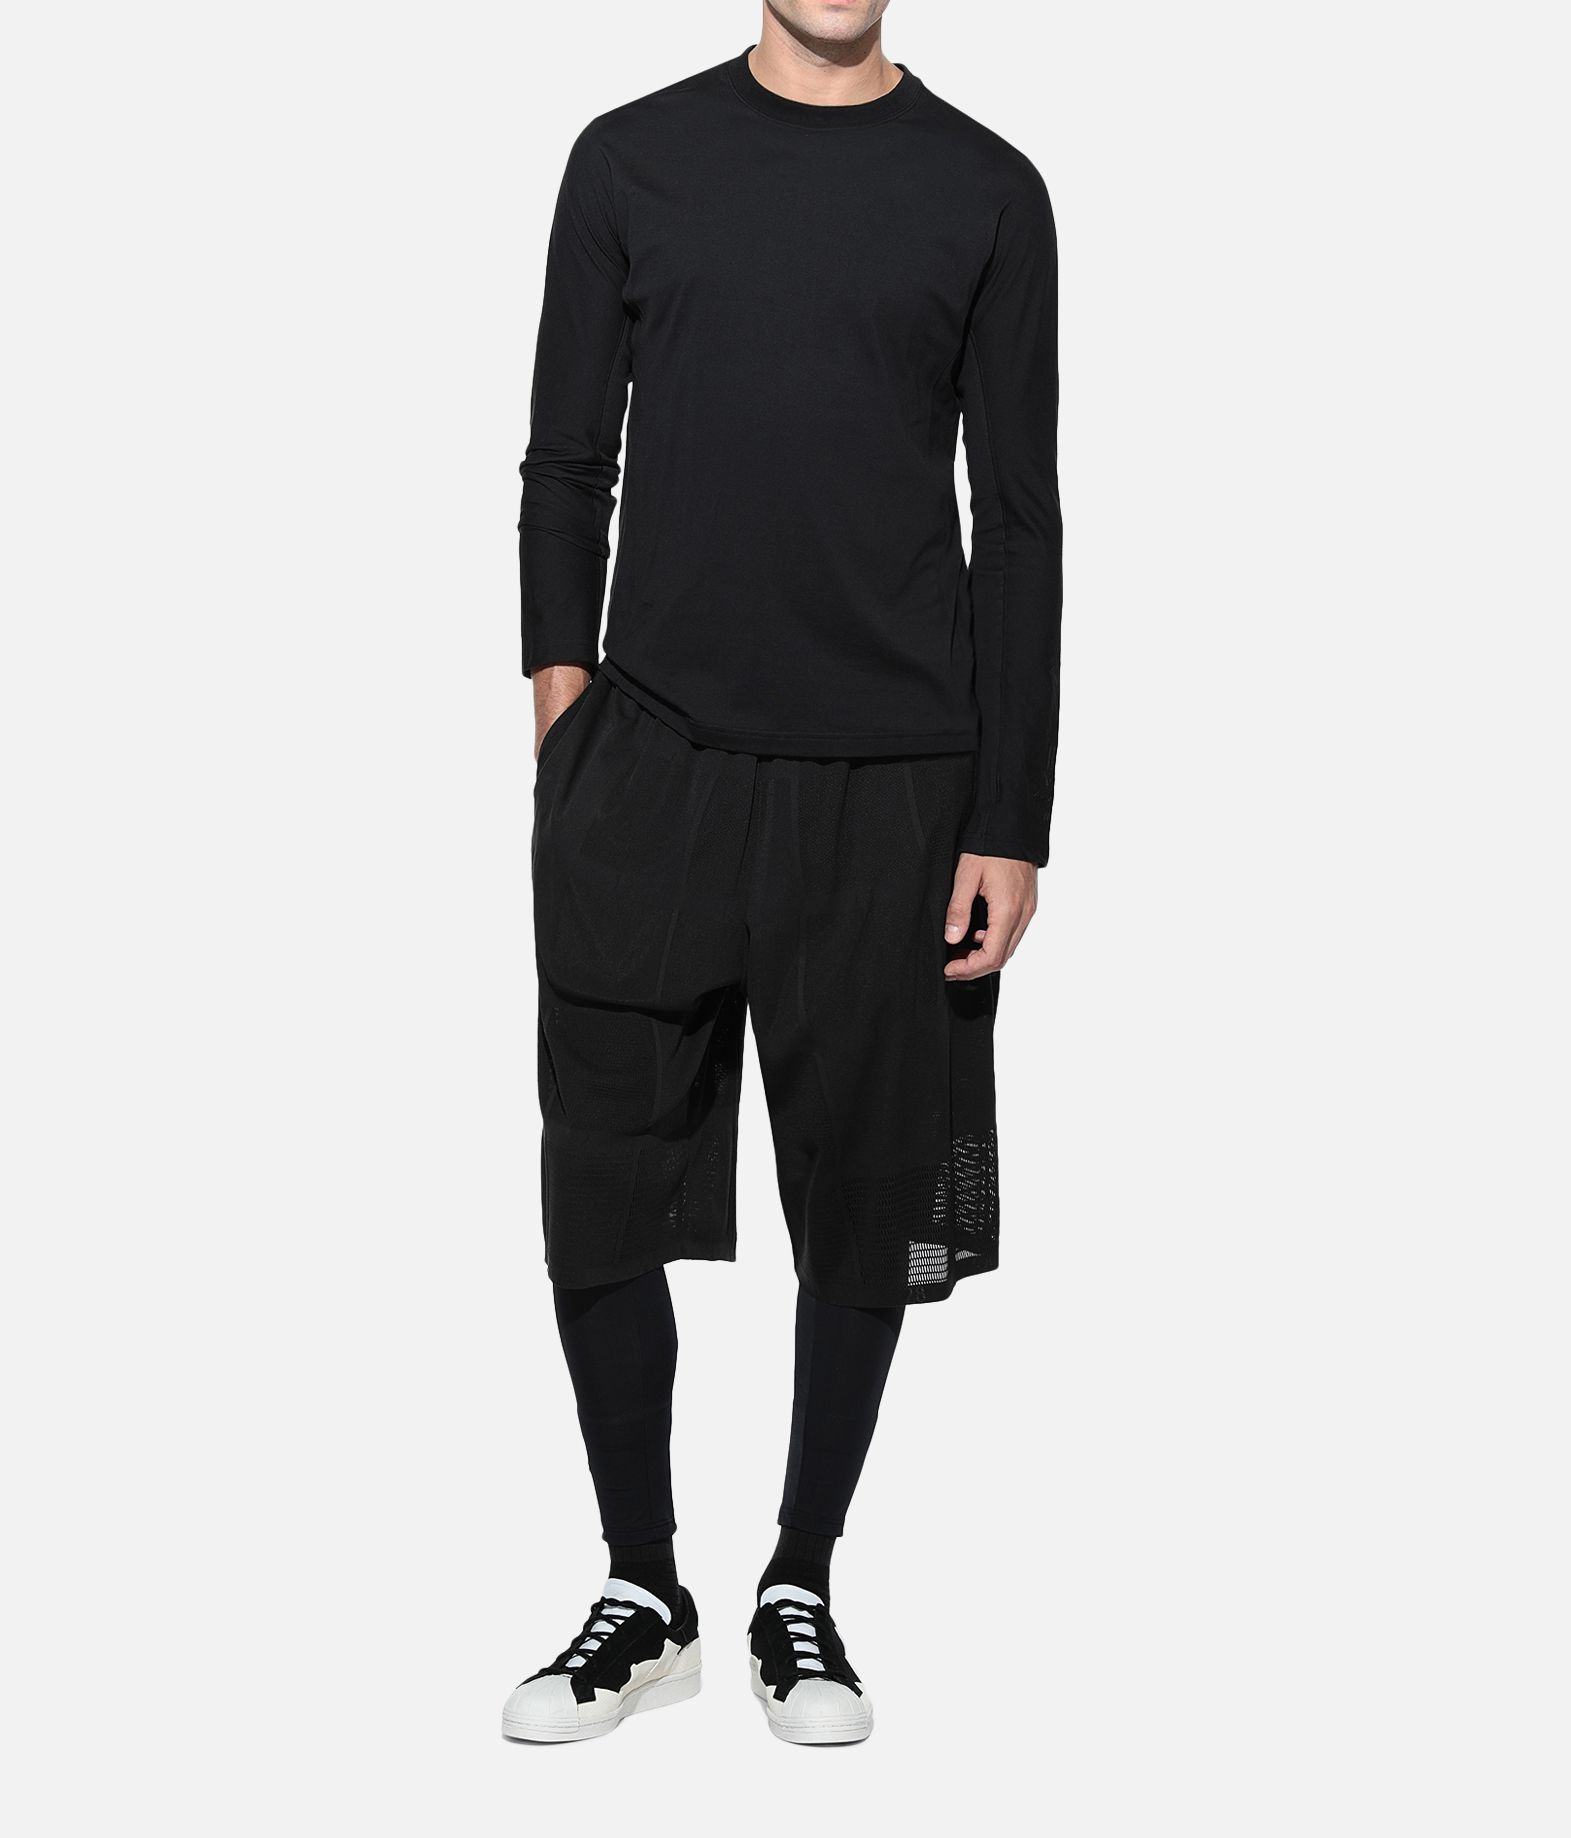 Y-3 Y-3 New Classic Tights Leggings Herren a